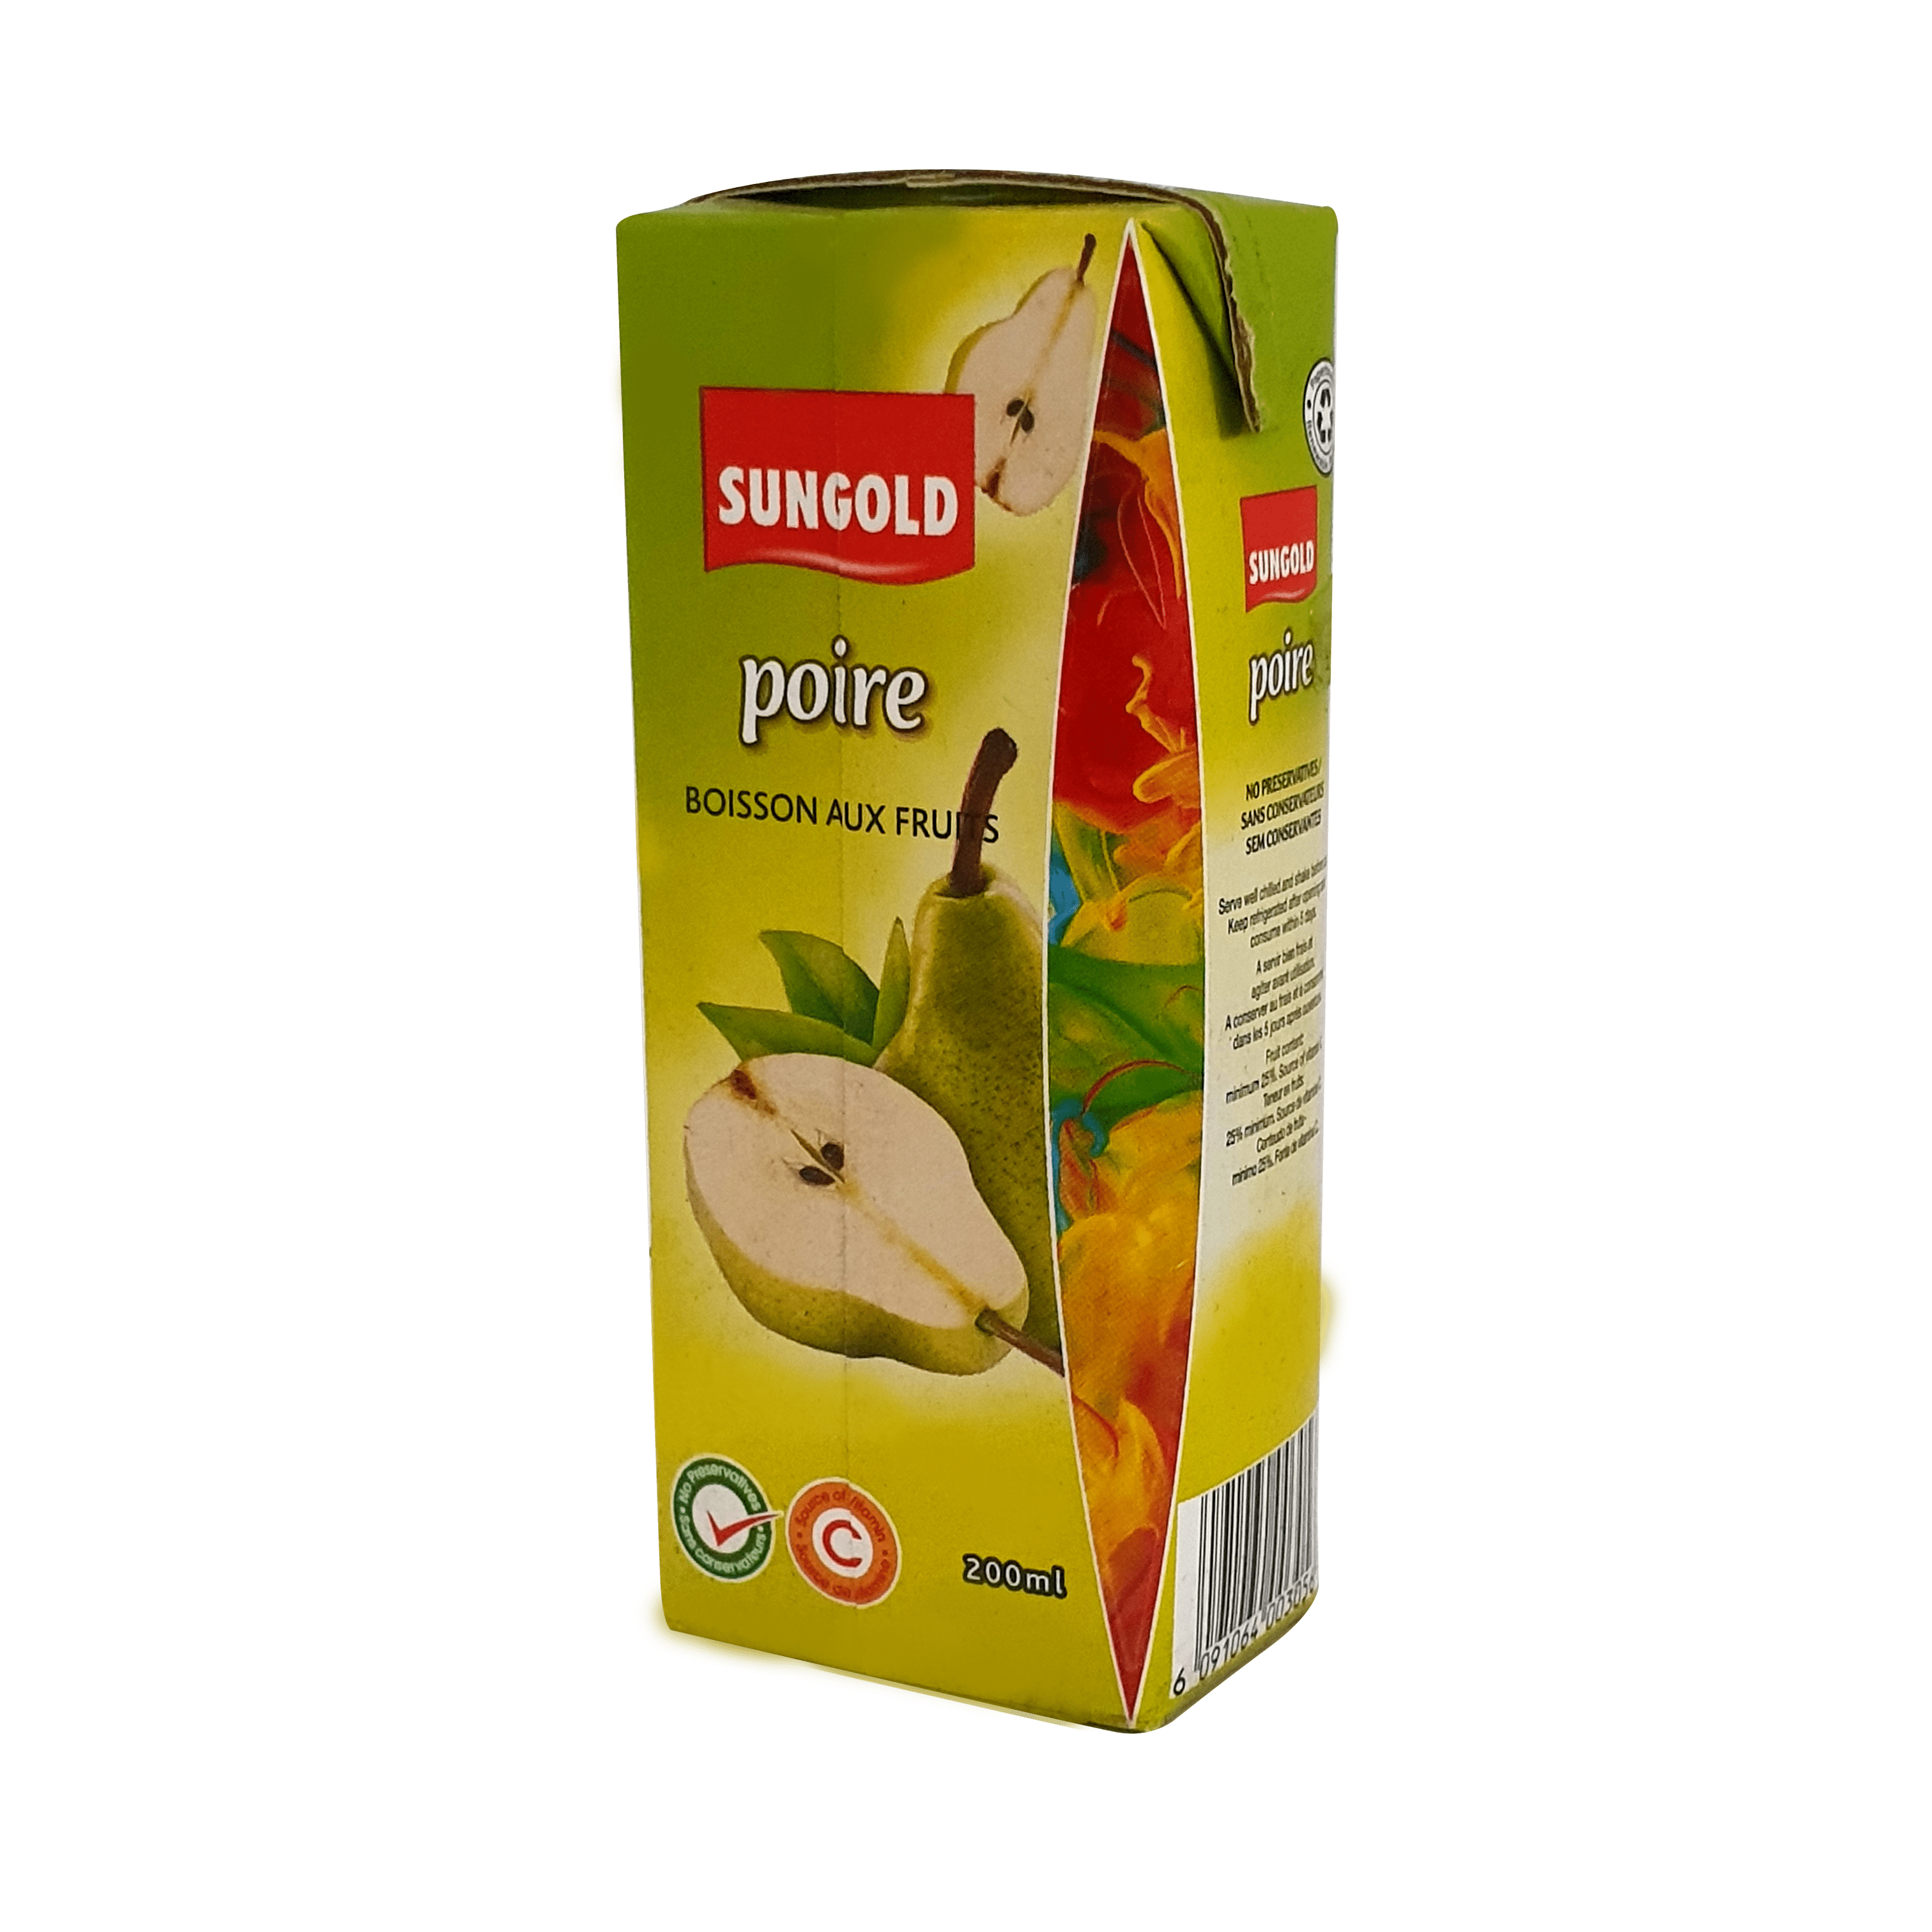 sungold-poire oct 19